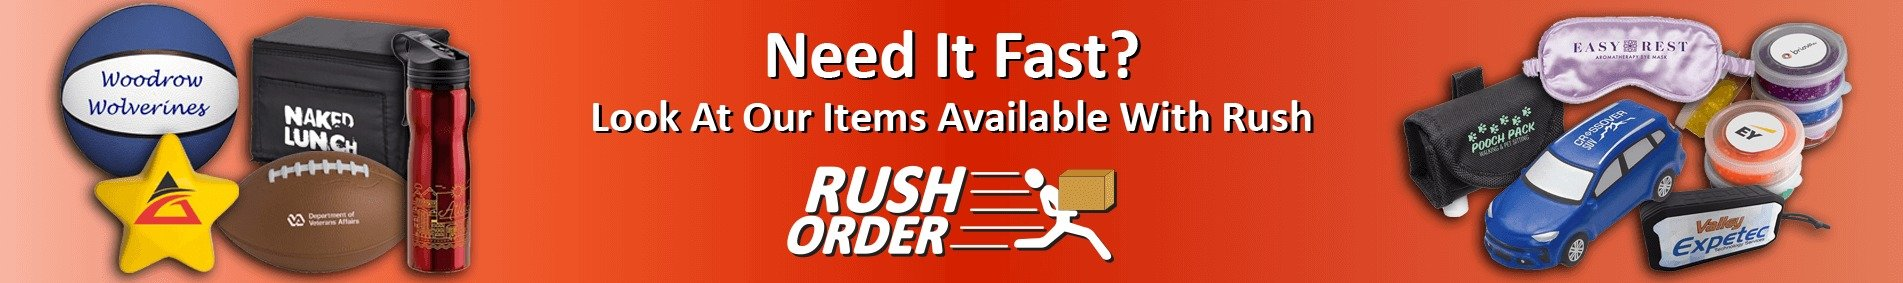 Rush Items Available